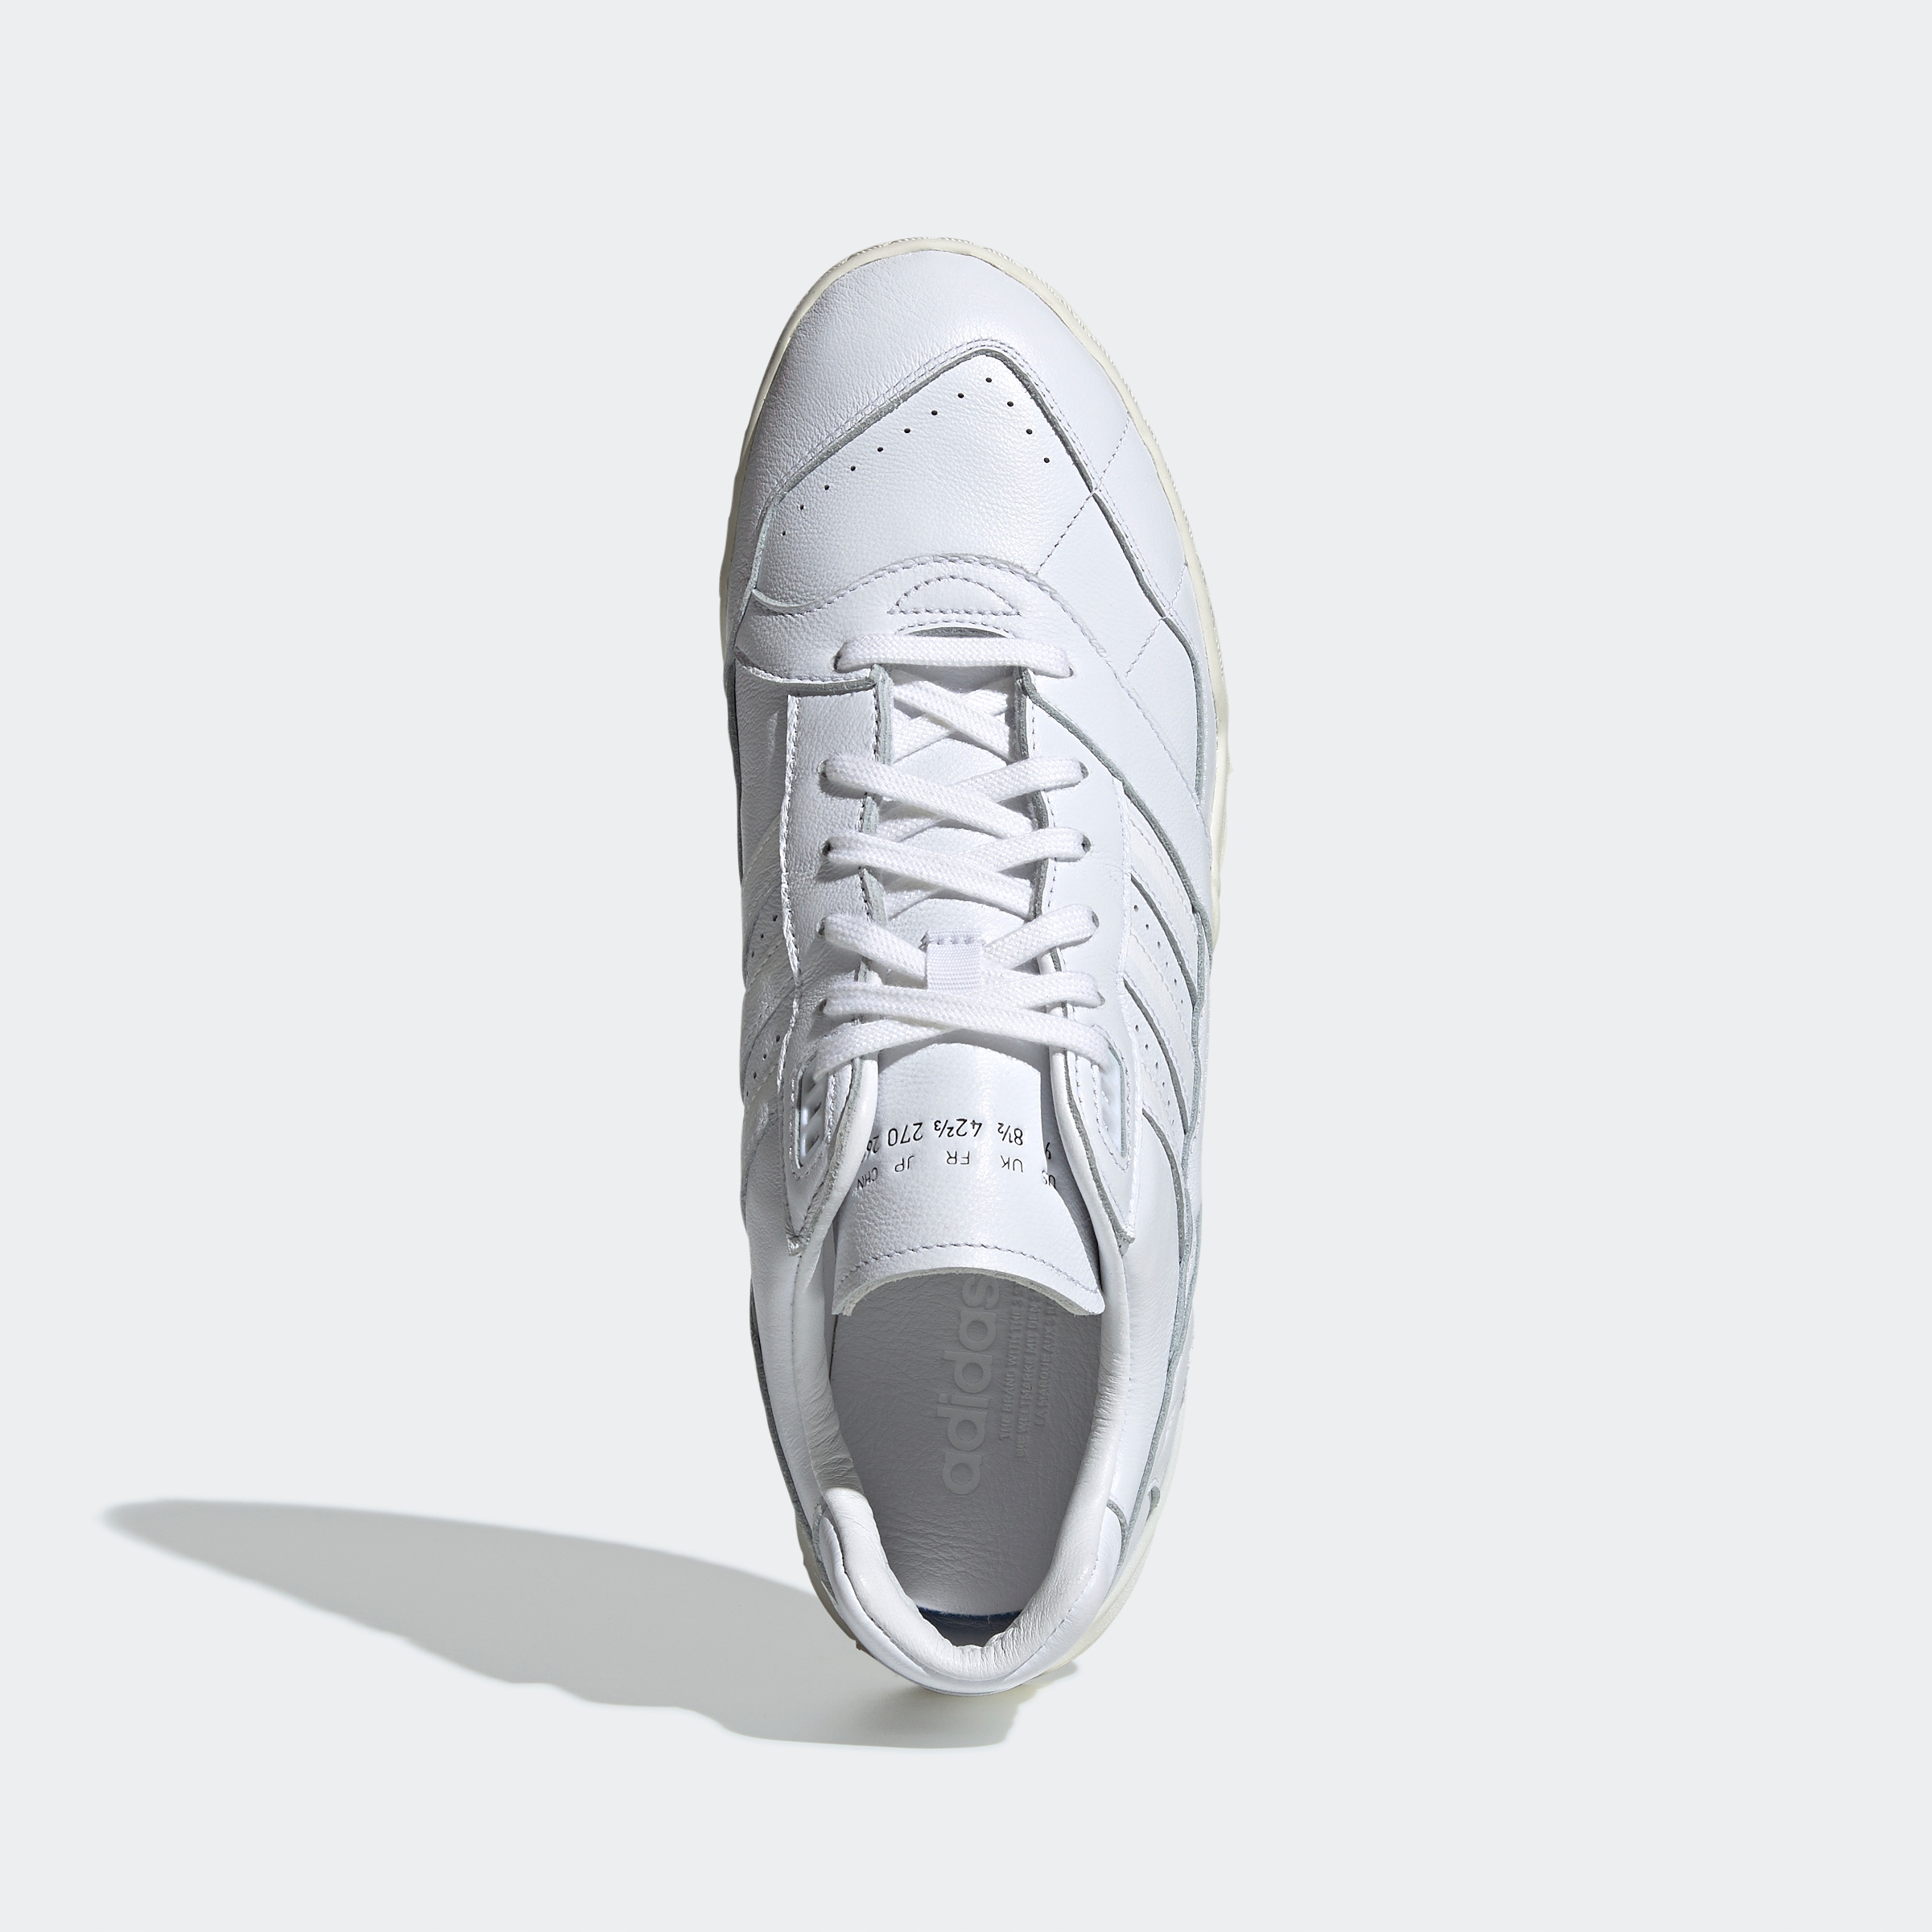 BUTY MĘSKIE ADIDAS A.R TRAINER SHOES EE6331 43 13